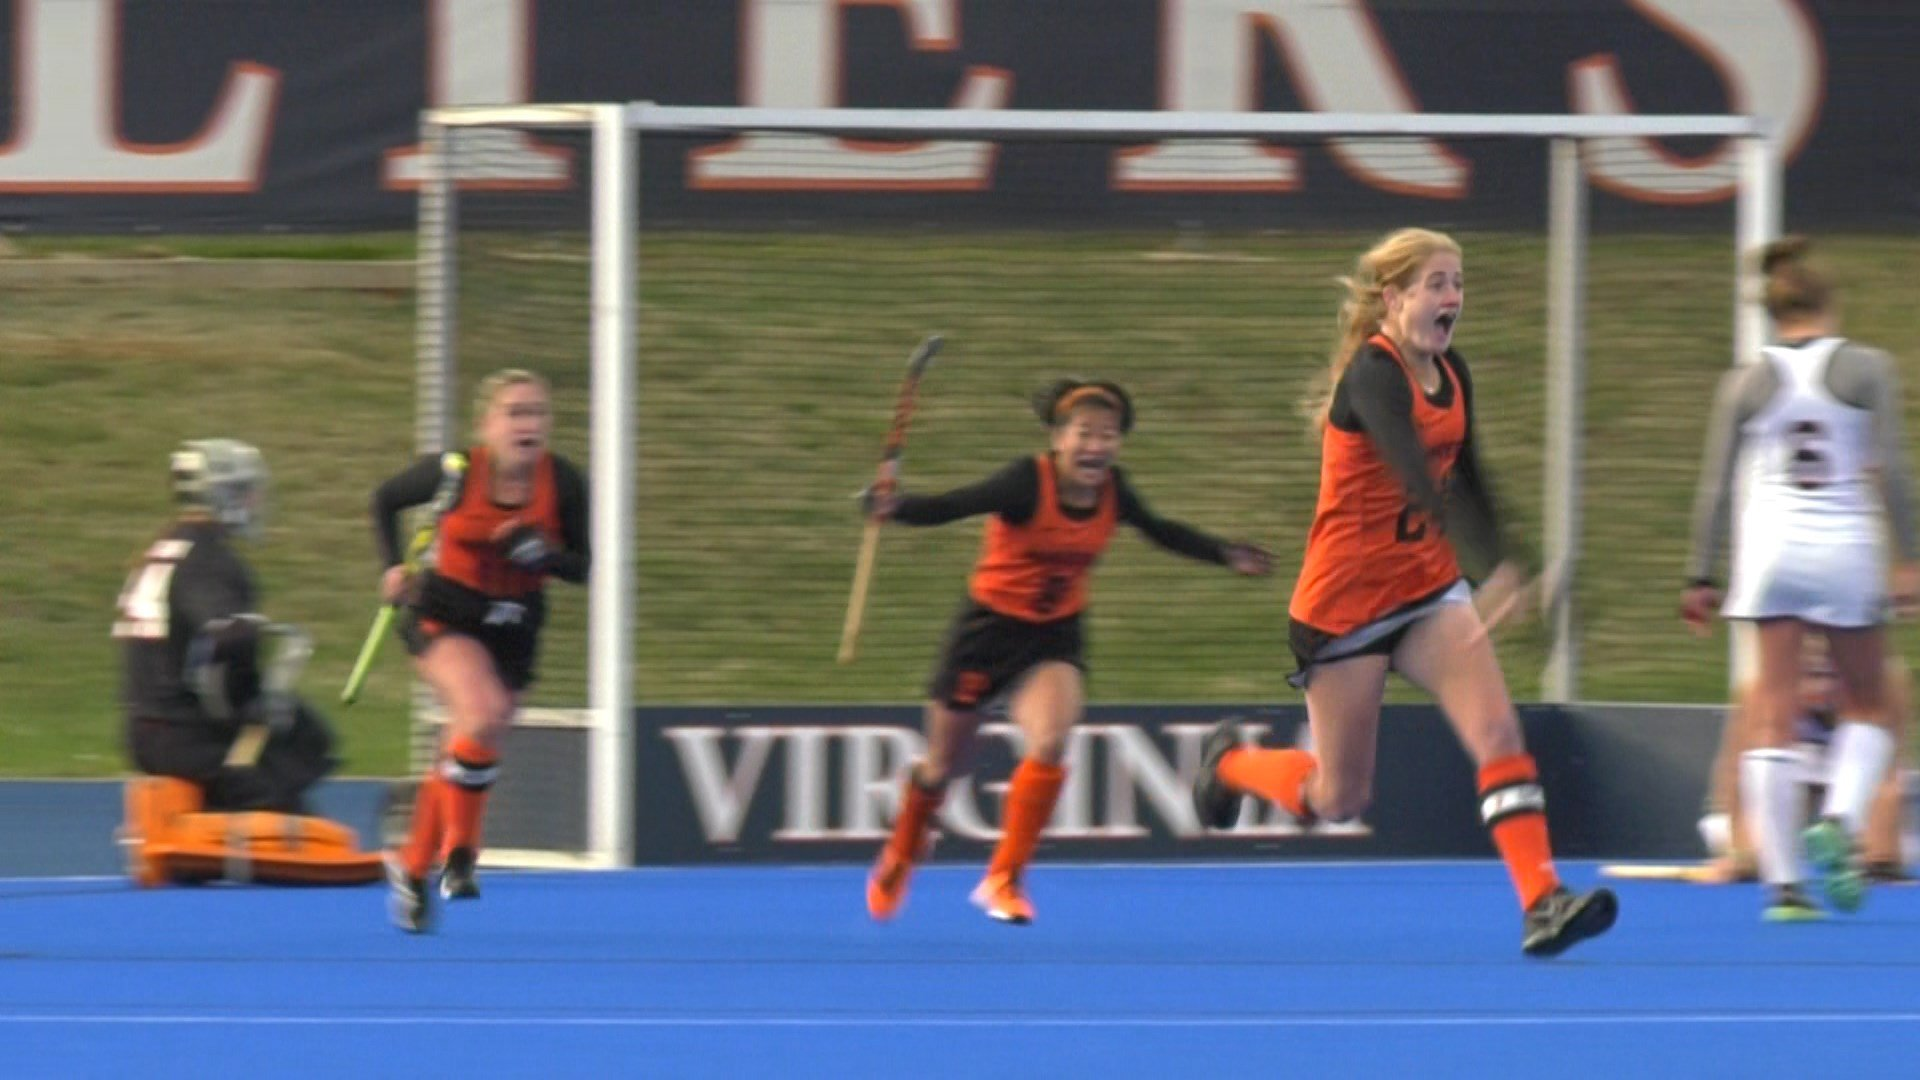 Ryan McCarthy scored the game-winner in double overtime for Princeton